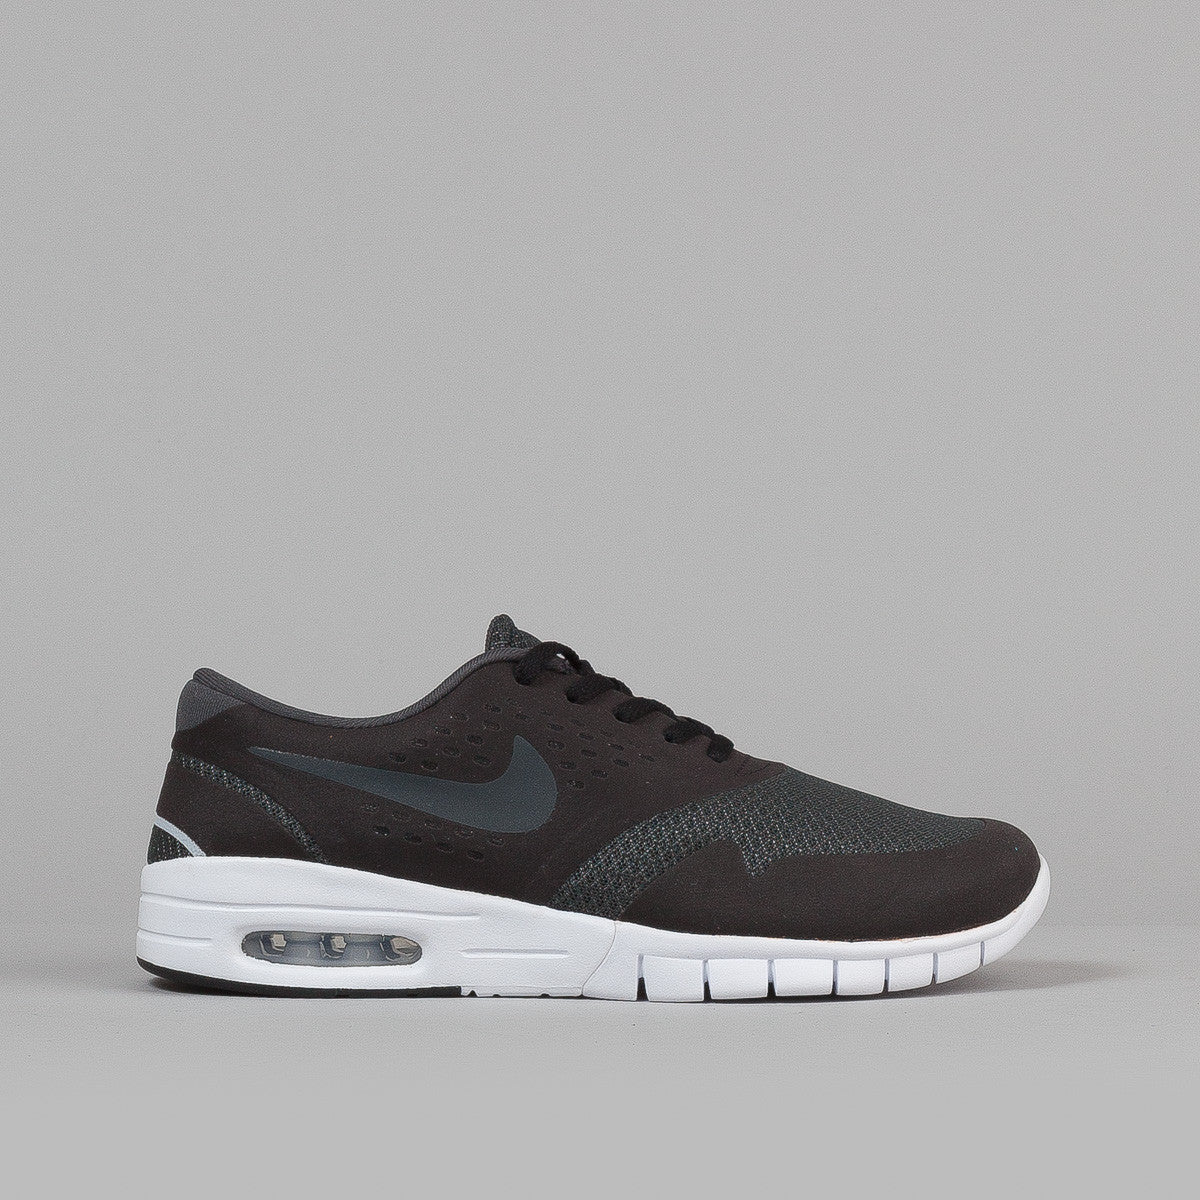 Nike SB Eric Koston 2 Max Black / Anthracite